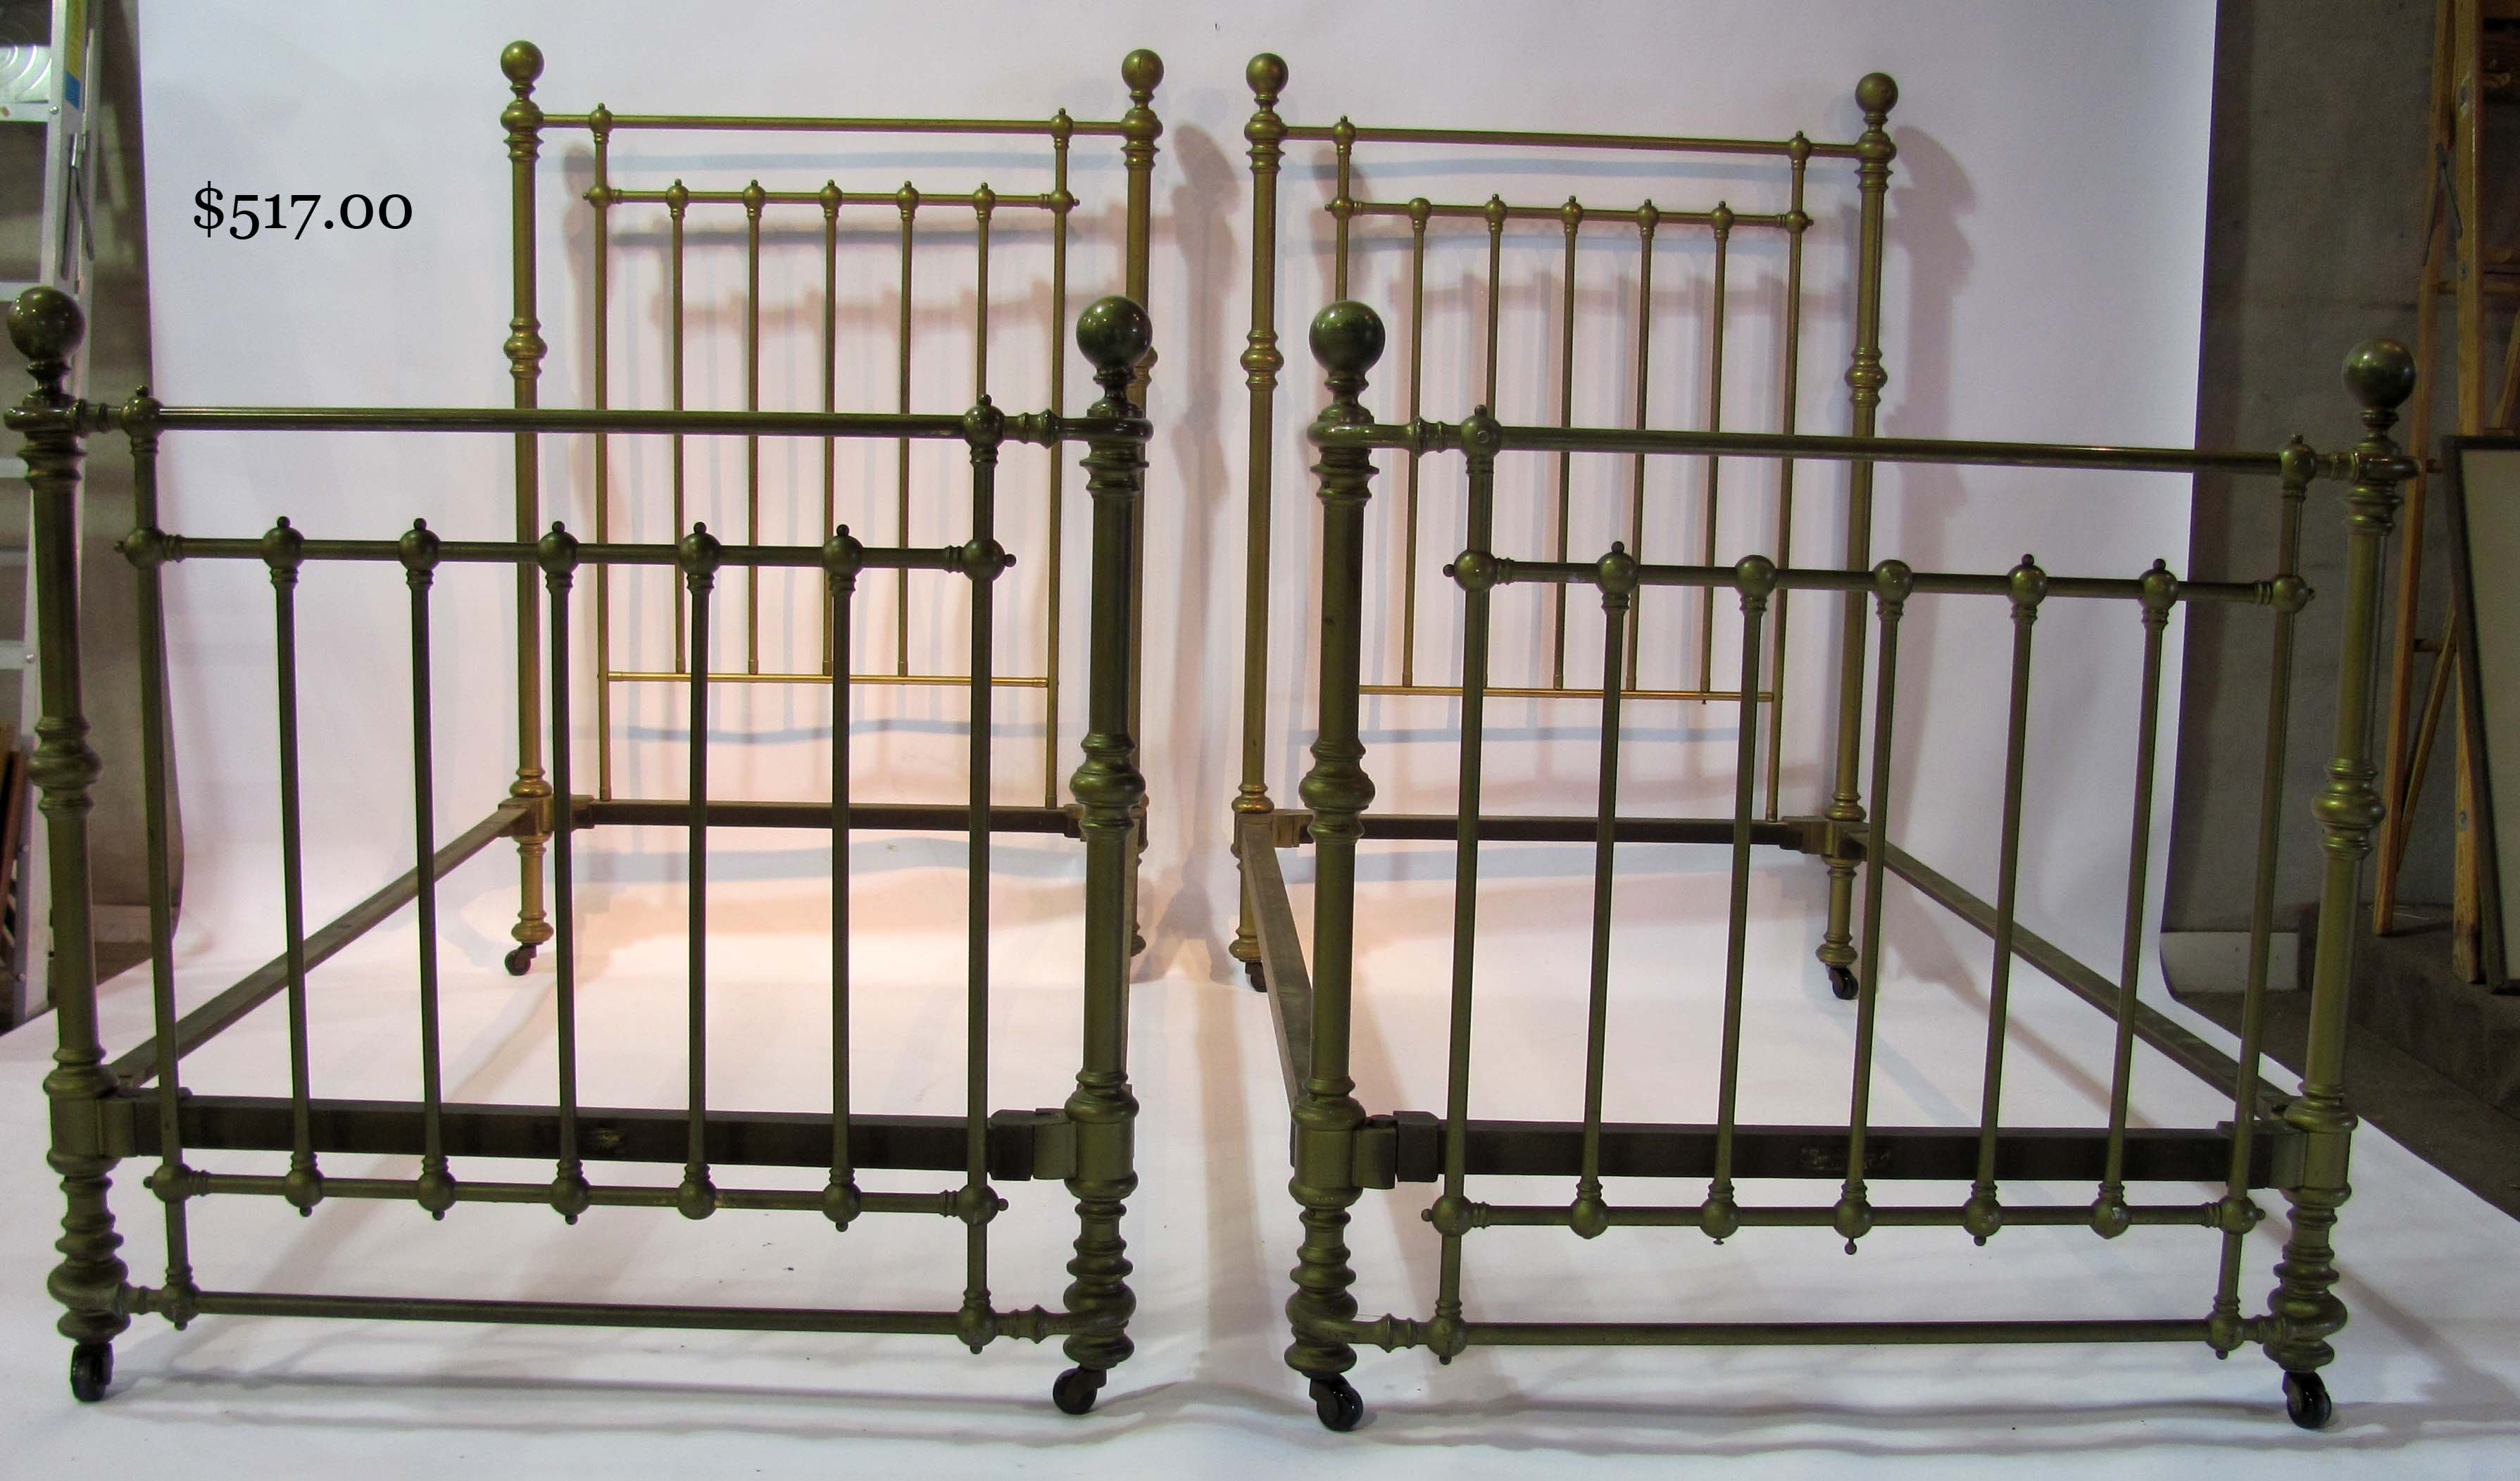 Auction of Estate Antiques : Lot514Brassbeds from www.hapmoore.com size 3579 x 2103 jpeg 447kB